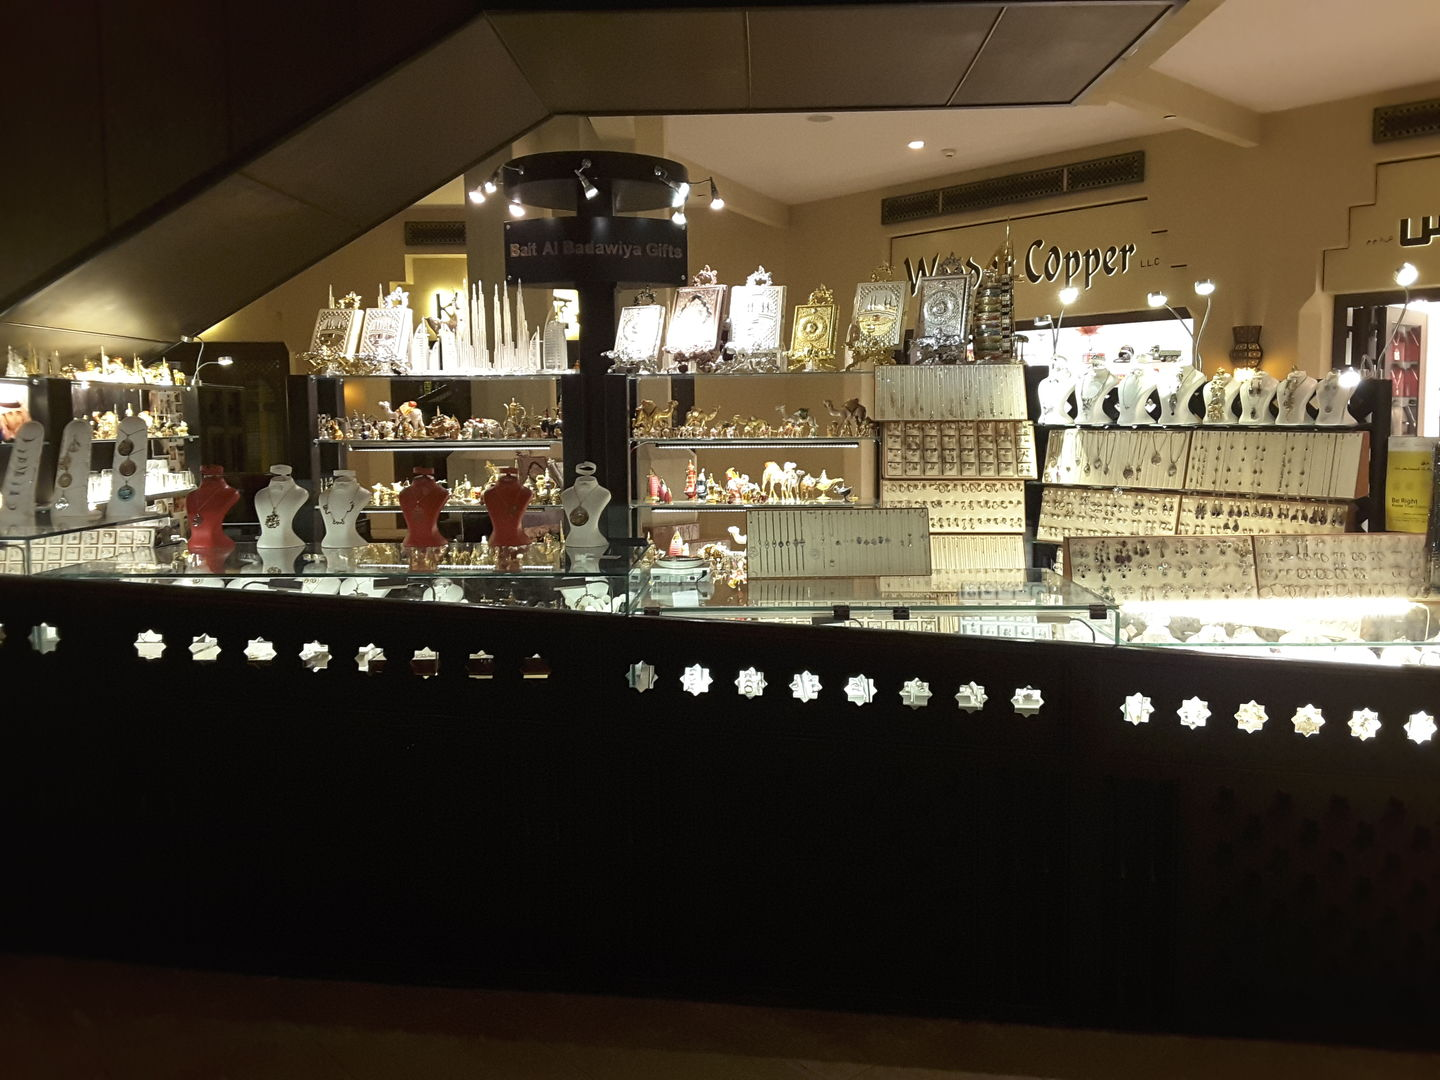 HiDubai-business-bait-al-badawiya-shopping-jewellery-precious-stones-downtown-dubai-dubai-2